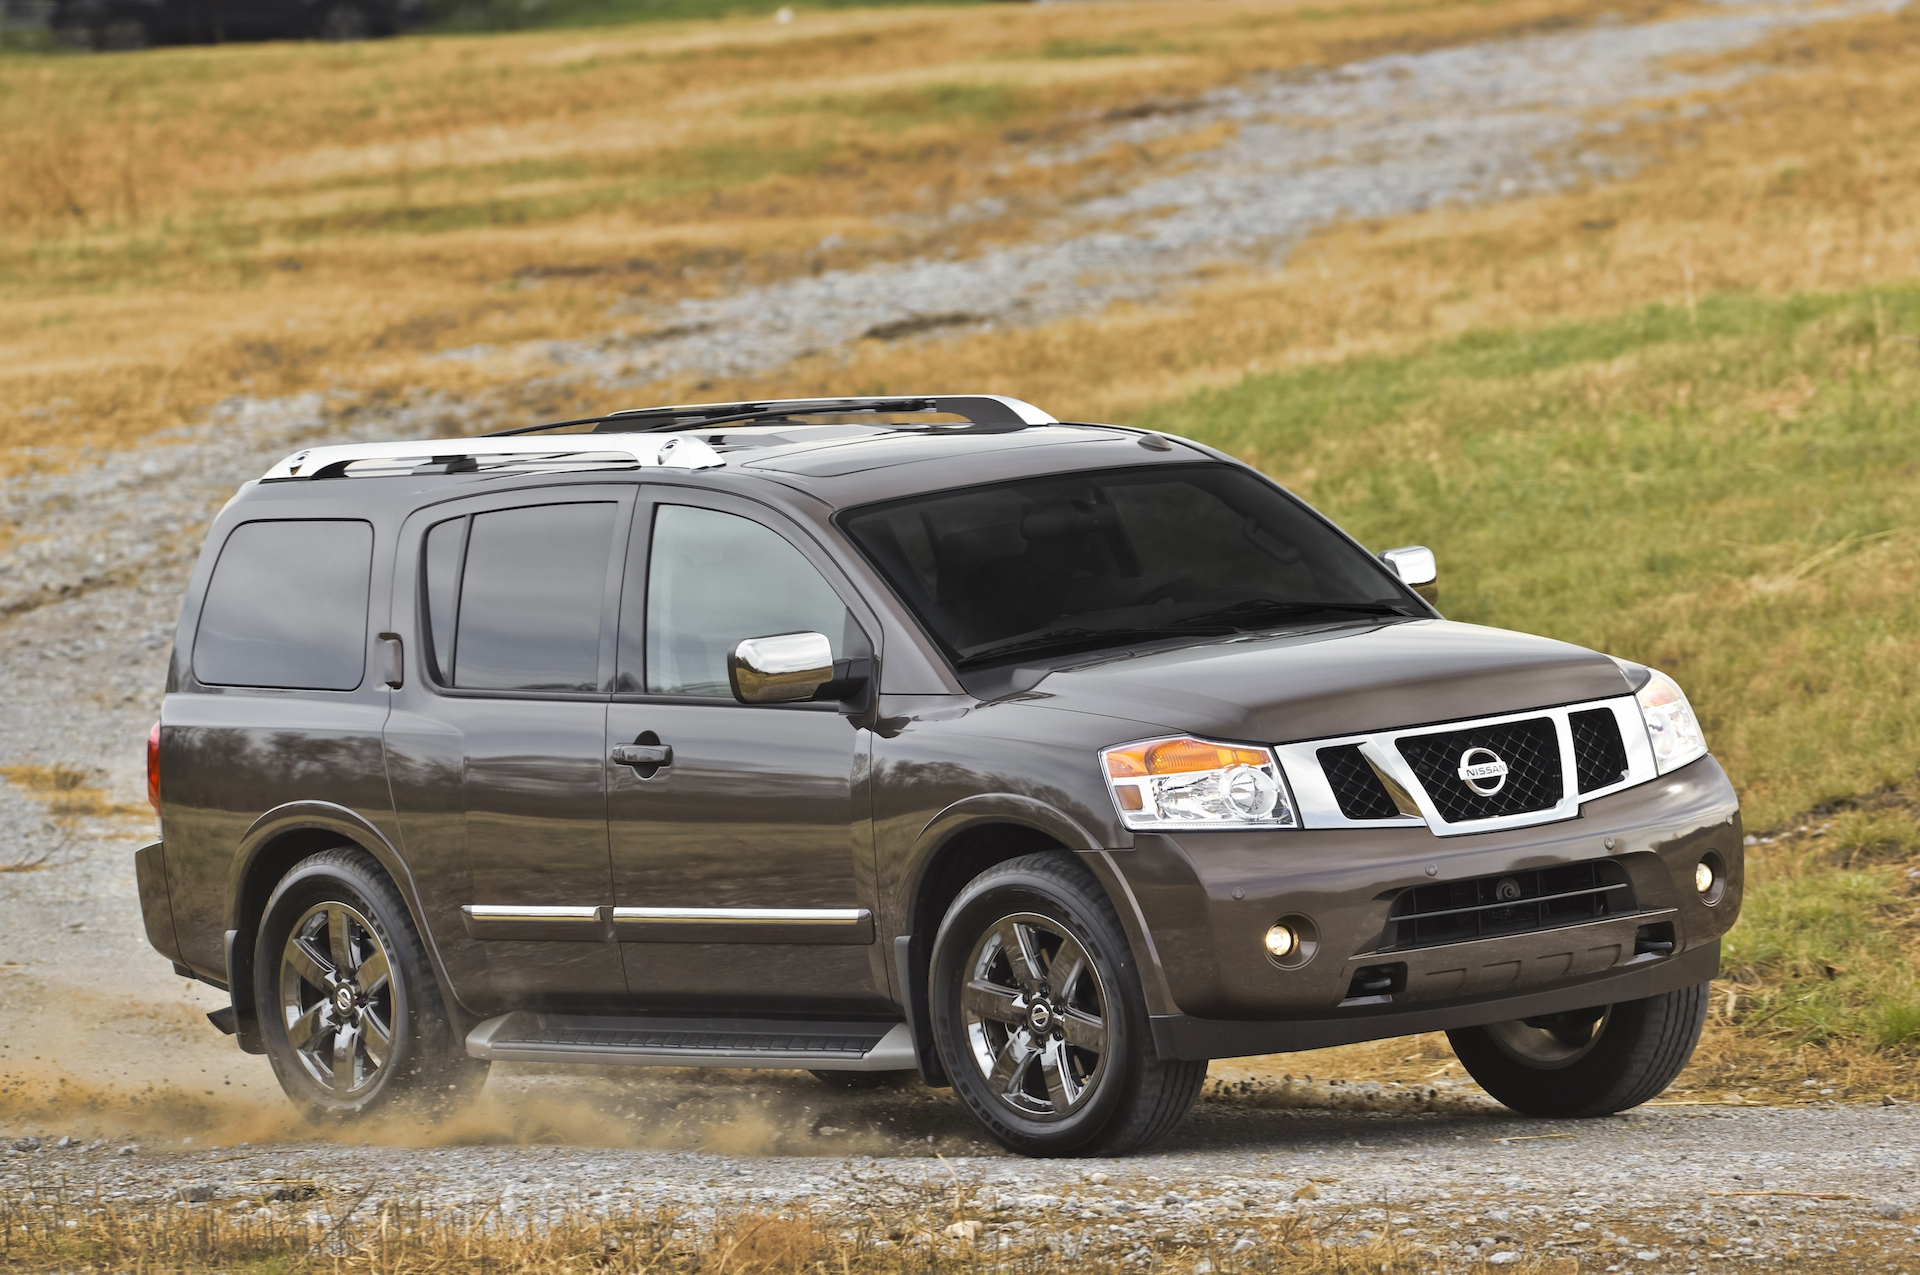 Hyundai Of El Paso >> 2015 Nissan Armada Review, Ratings, Specs, Prices, and ...